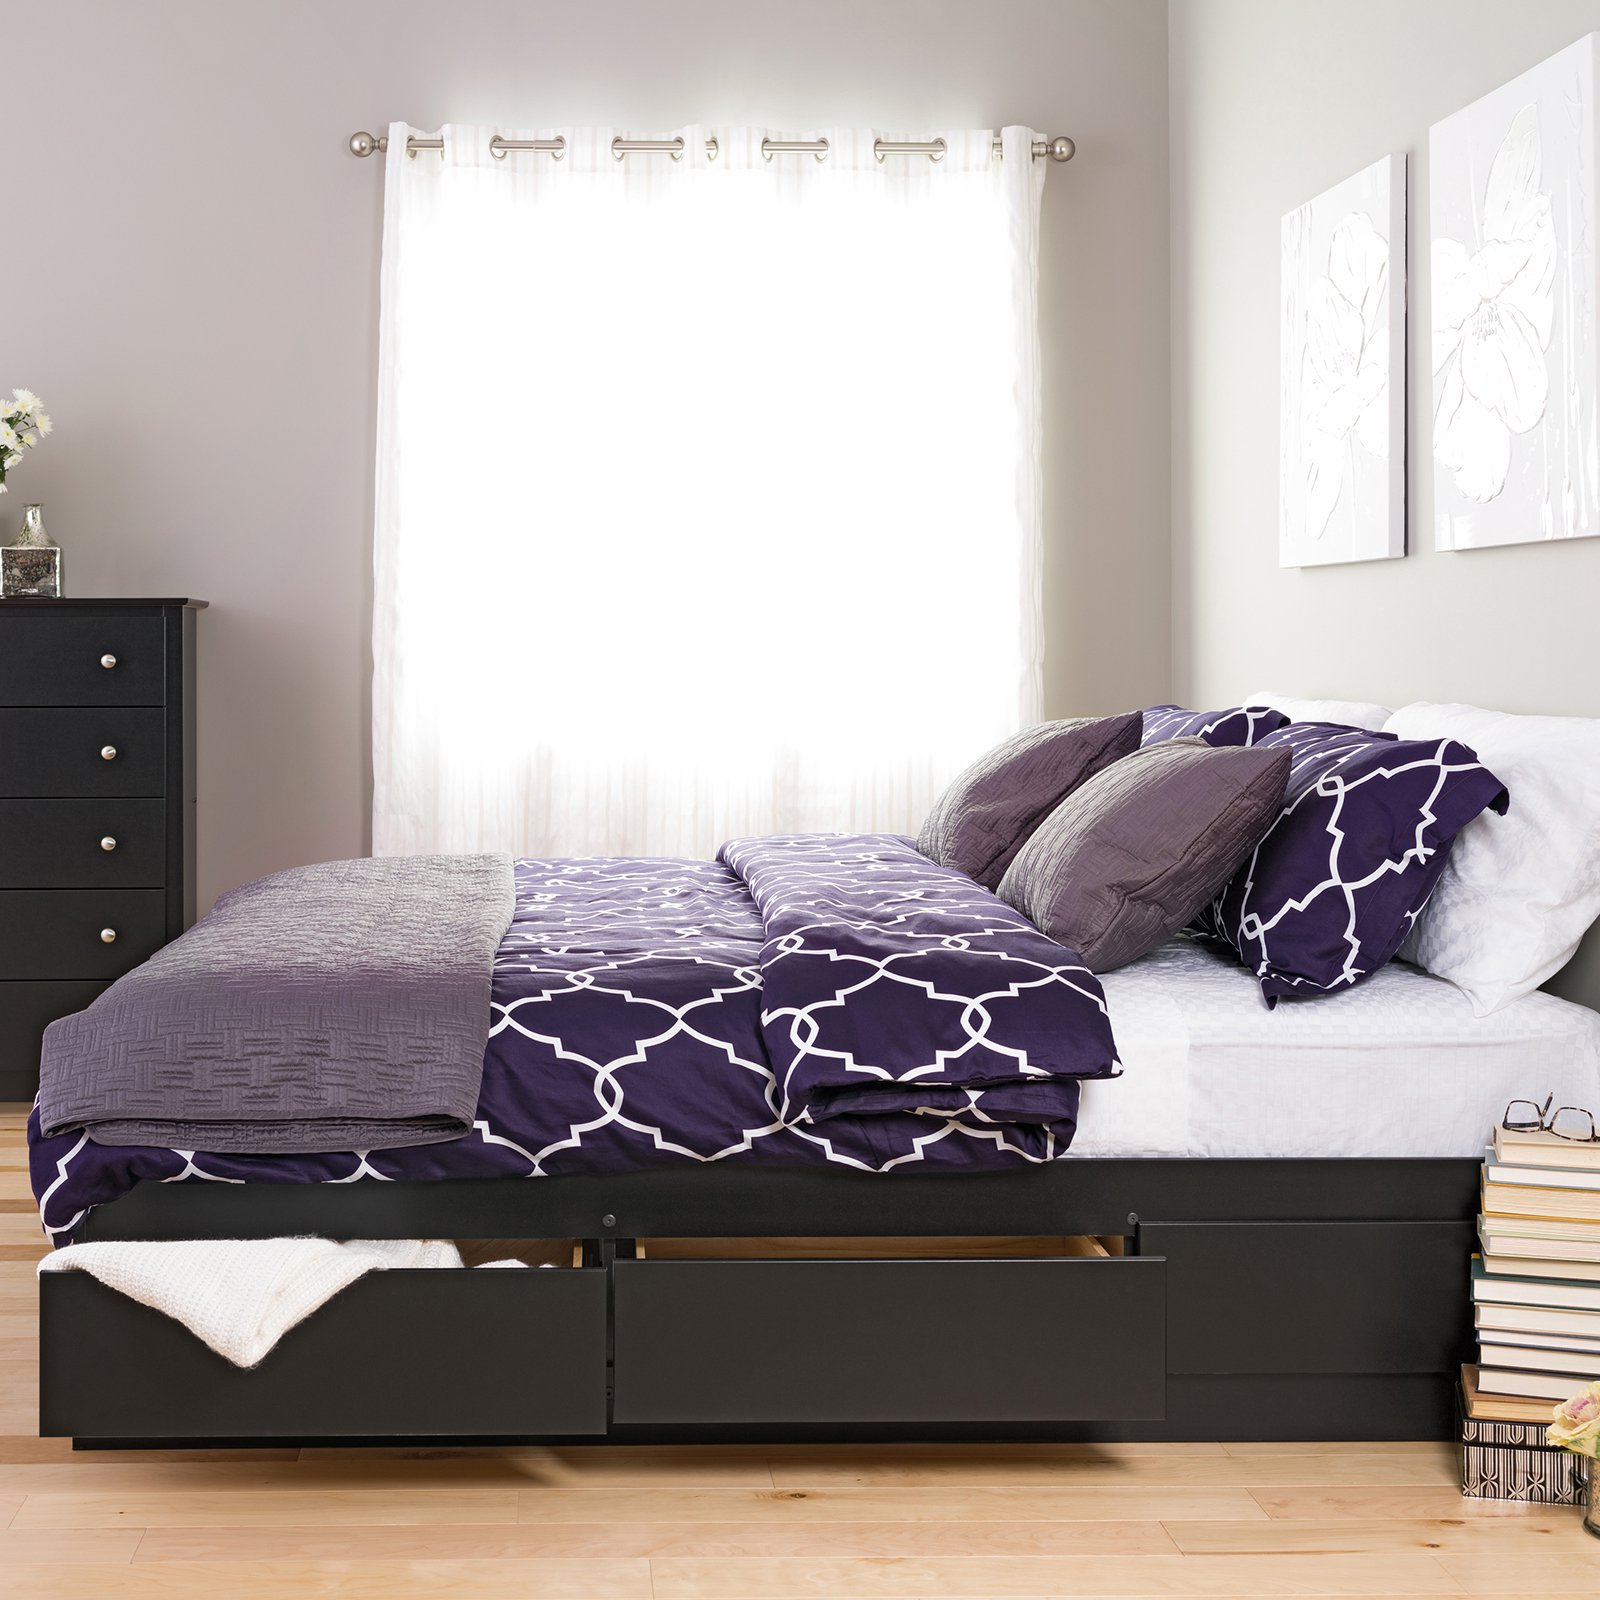 DIY Platform Bed With Storage Size